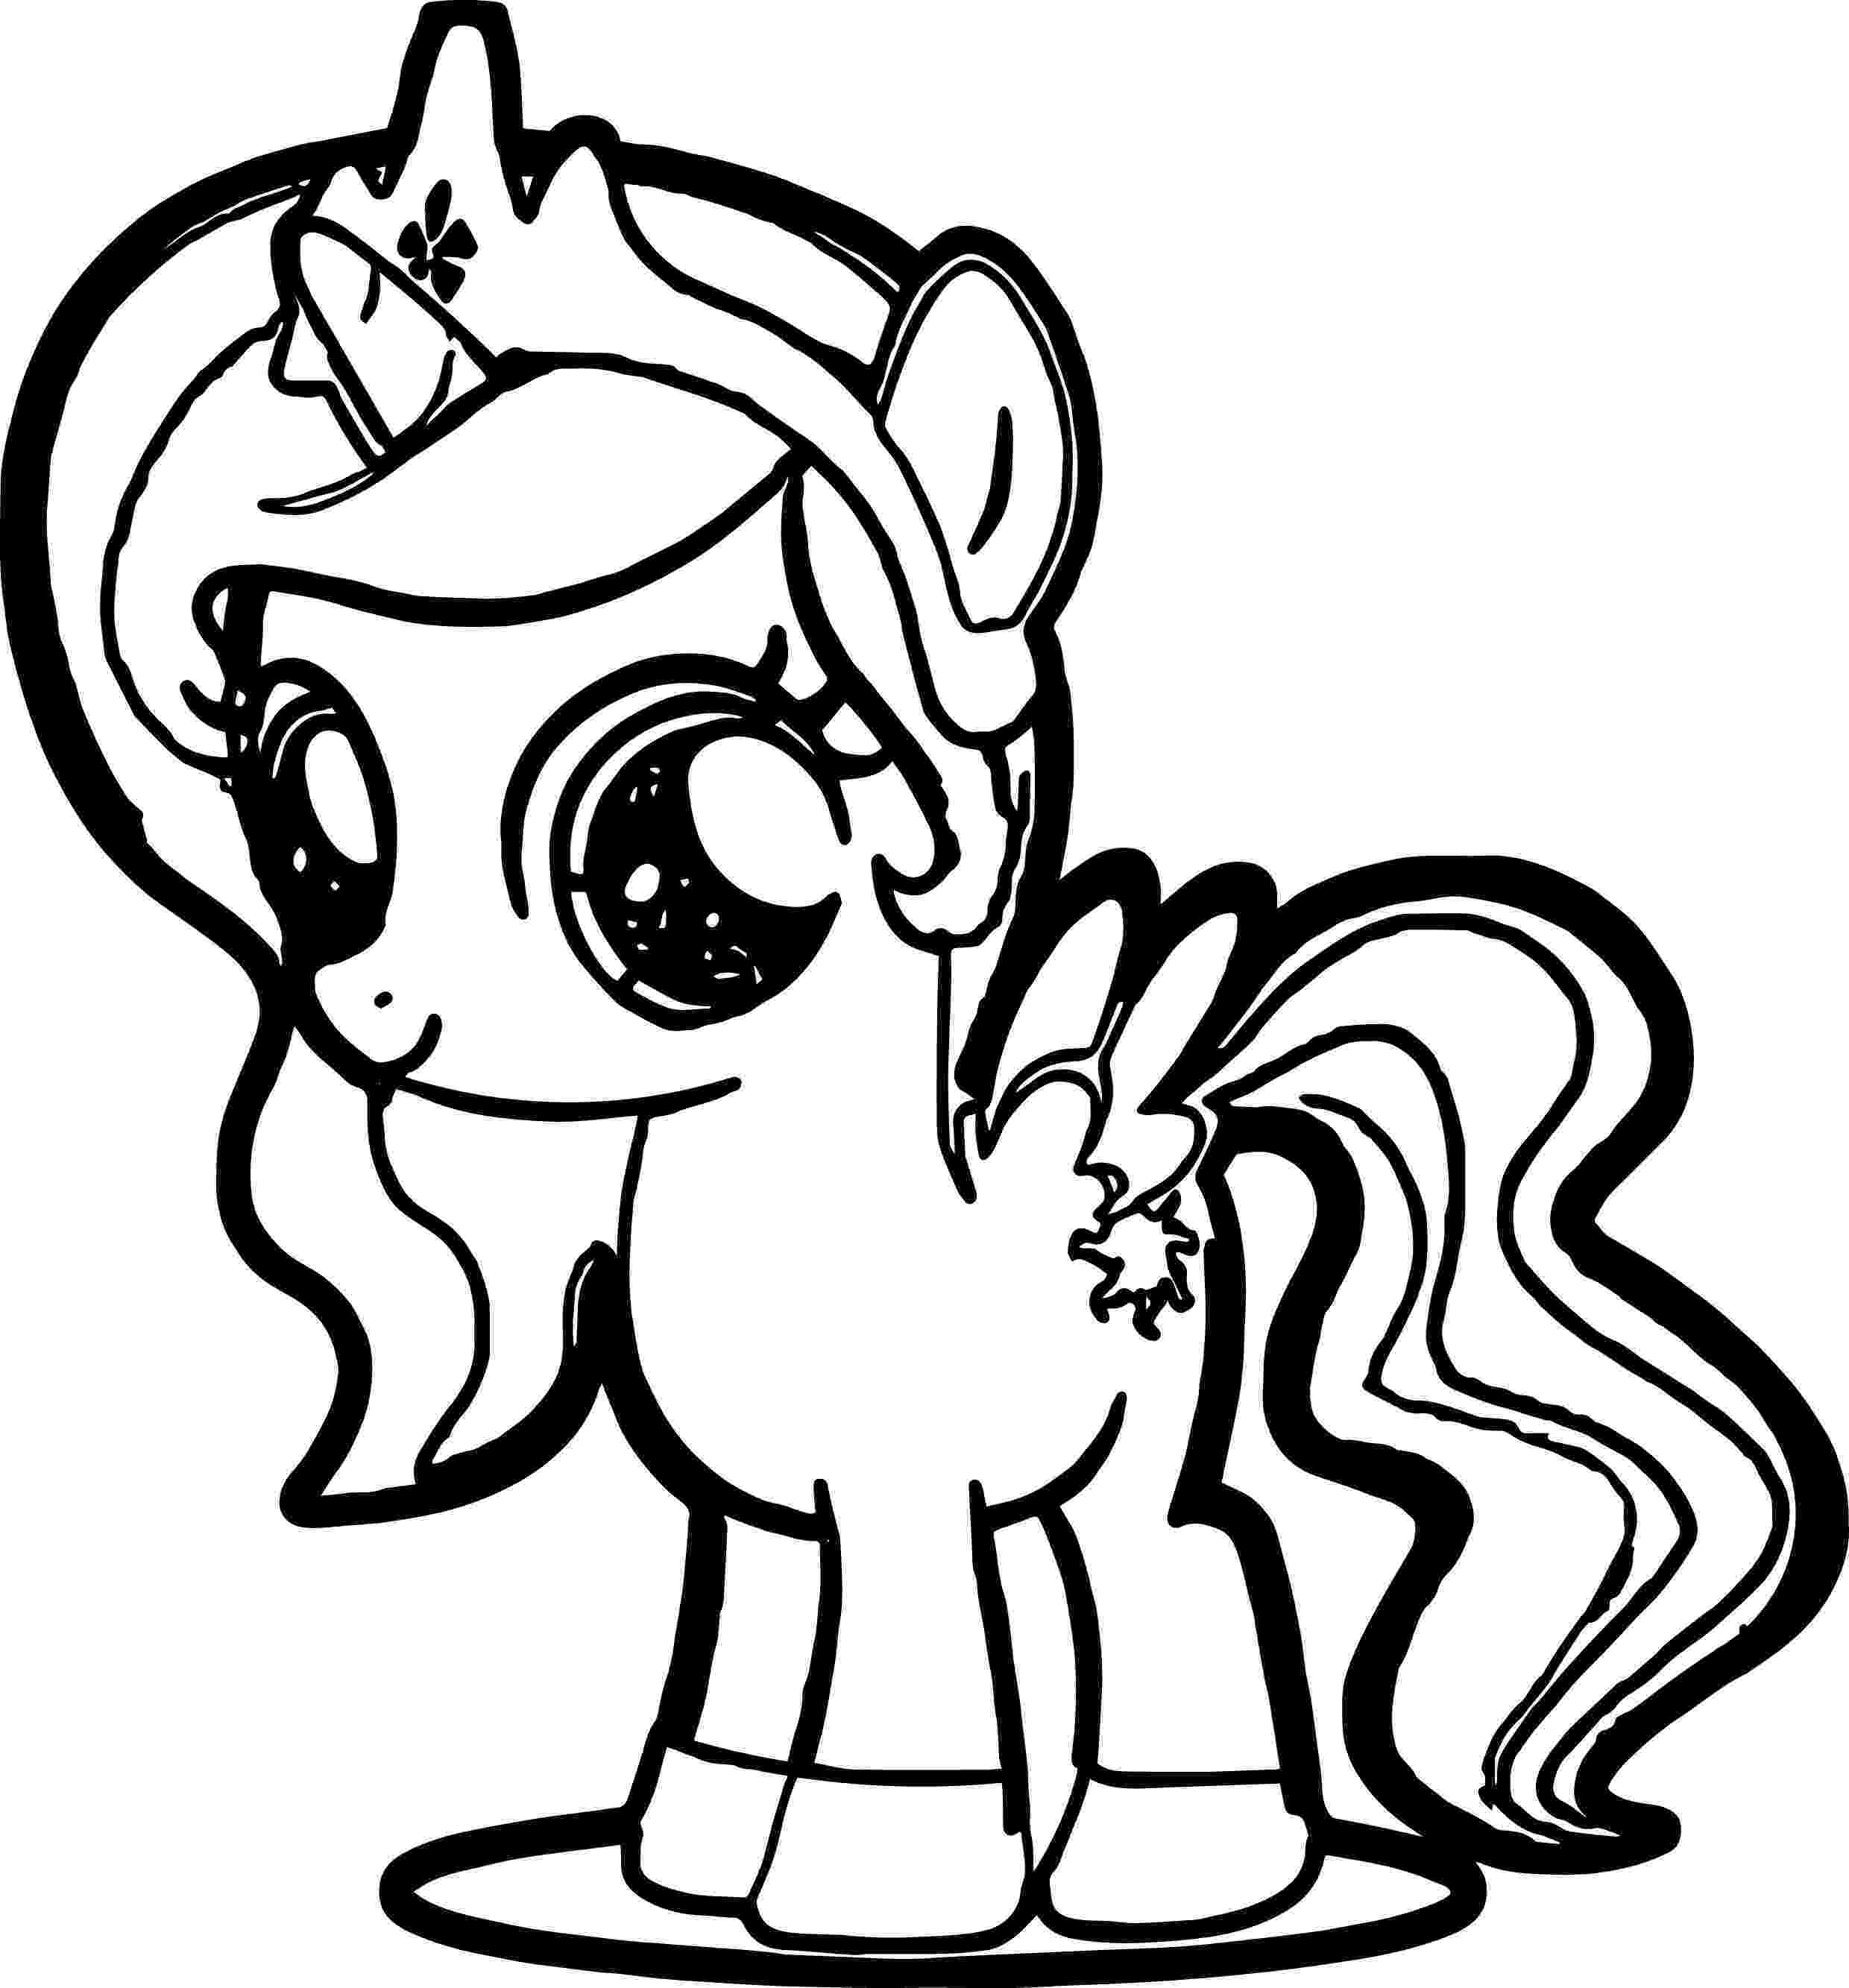 my little pony baby coloring pages baby my little pony coloring page stuff for kahlan baby my pony coloring little pages